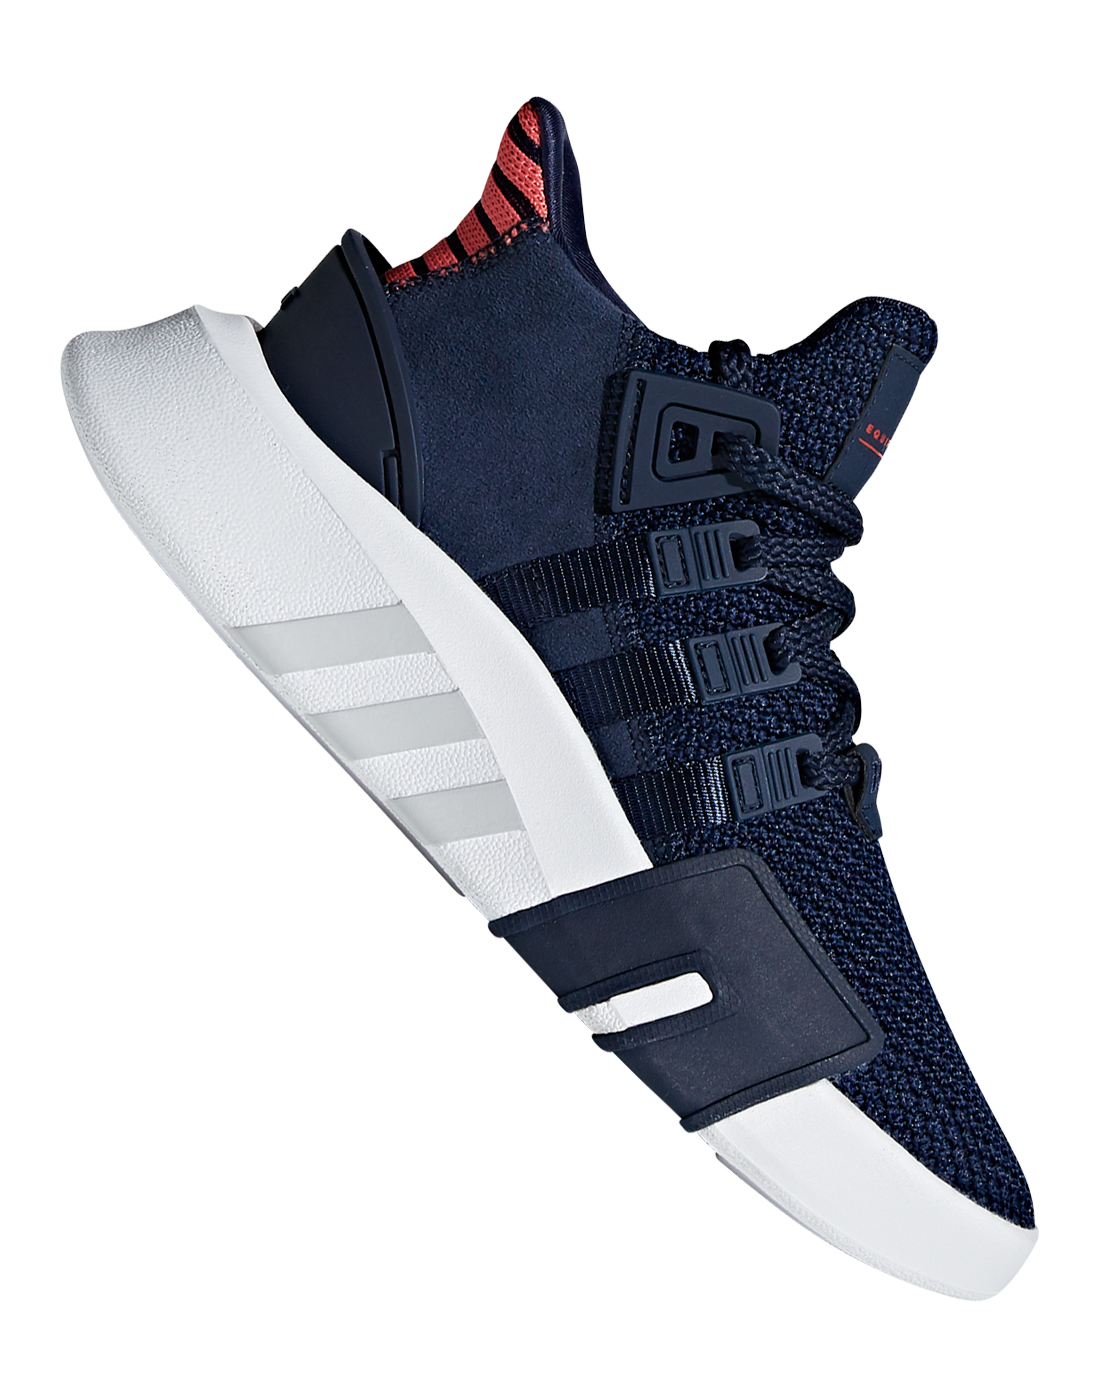 8e712707599c Older Kids adidas Originals EQT Trainer